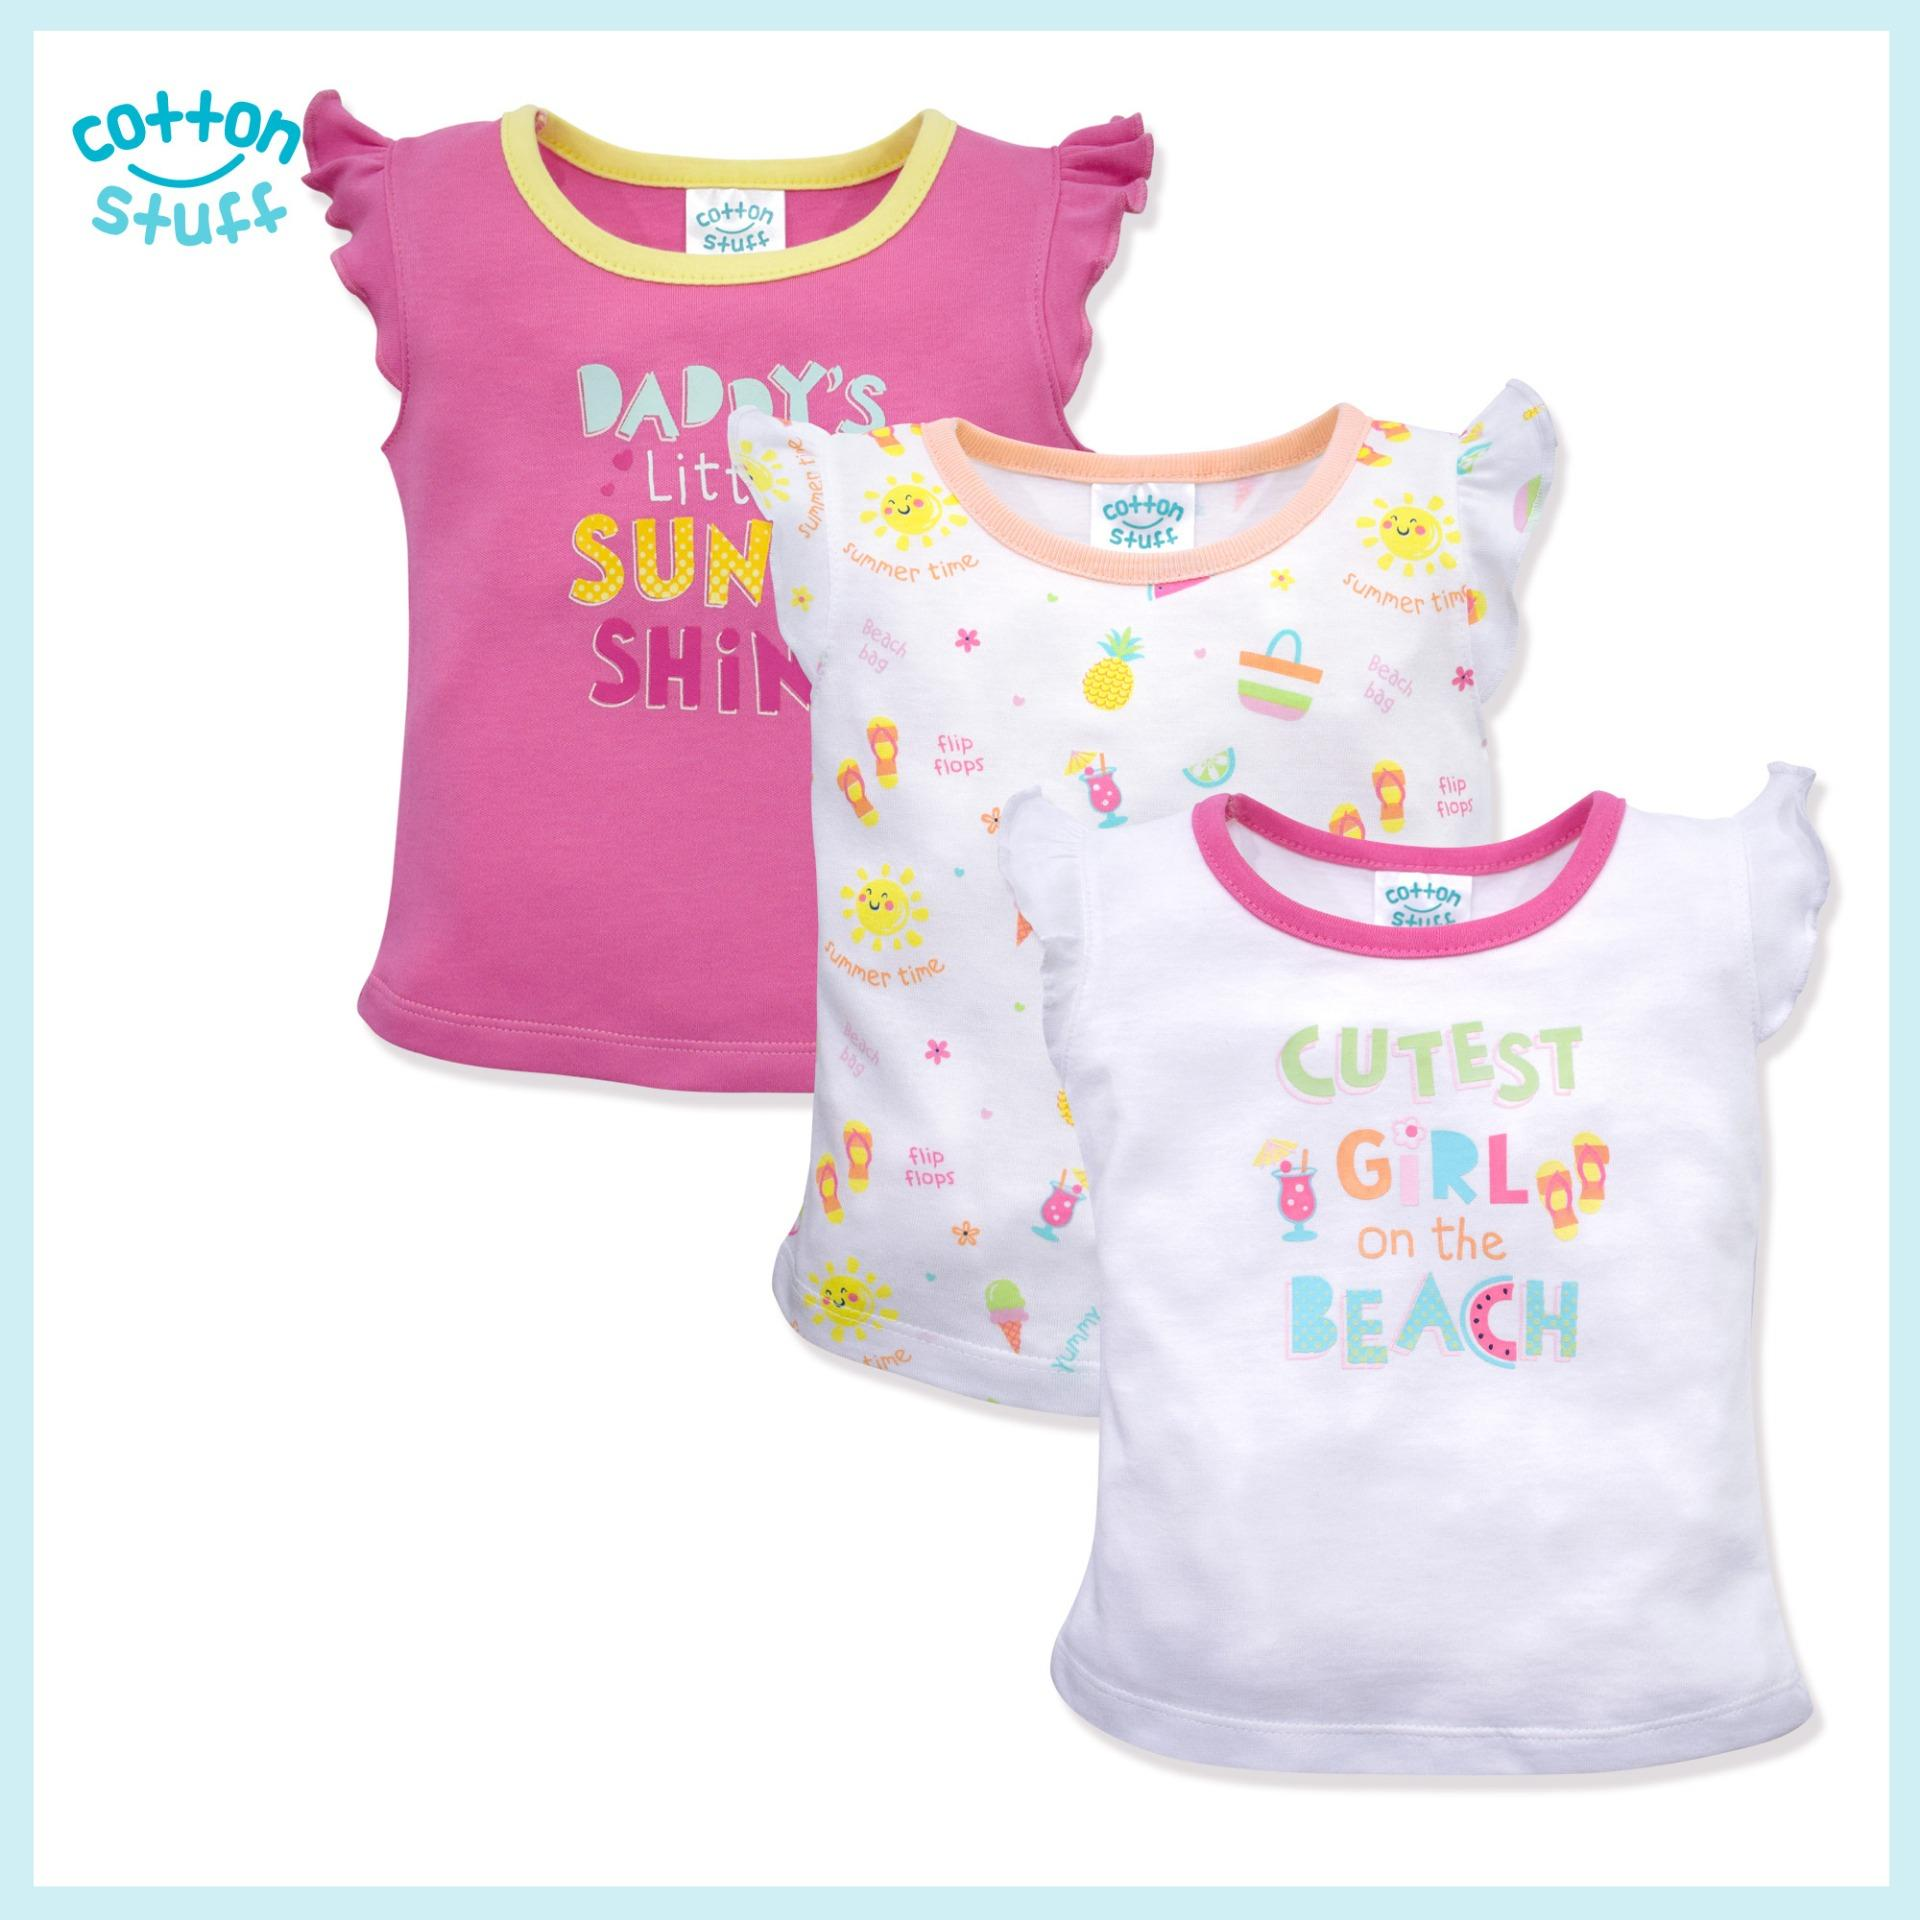 5b573aea4 Young Girls Clothing for sale - Baby Clothing for Girls online ...